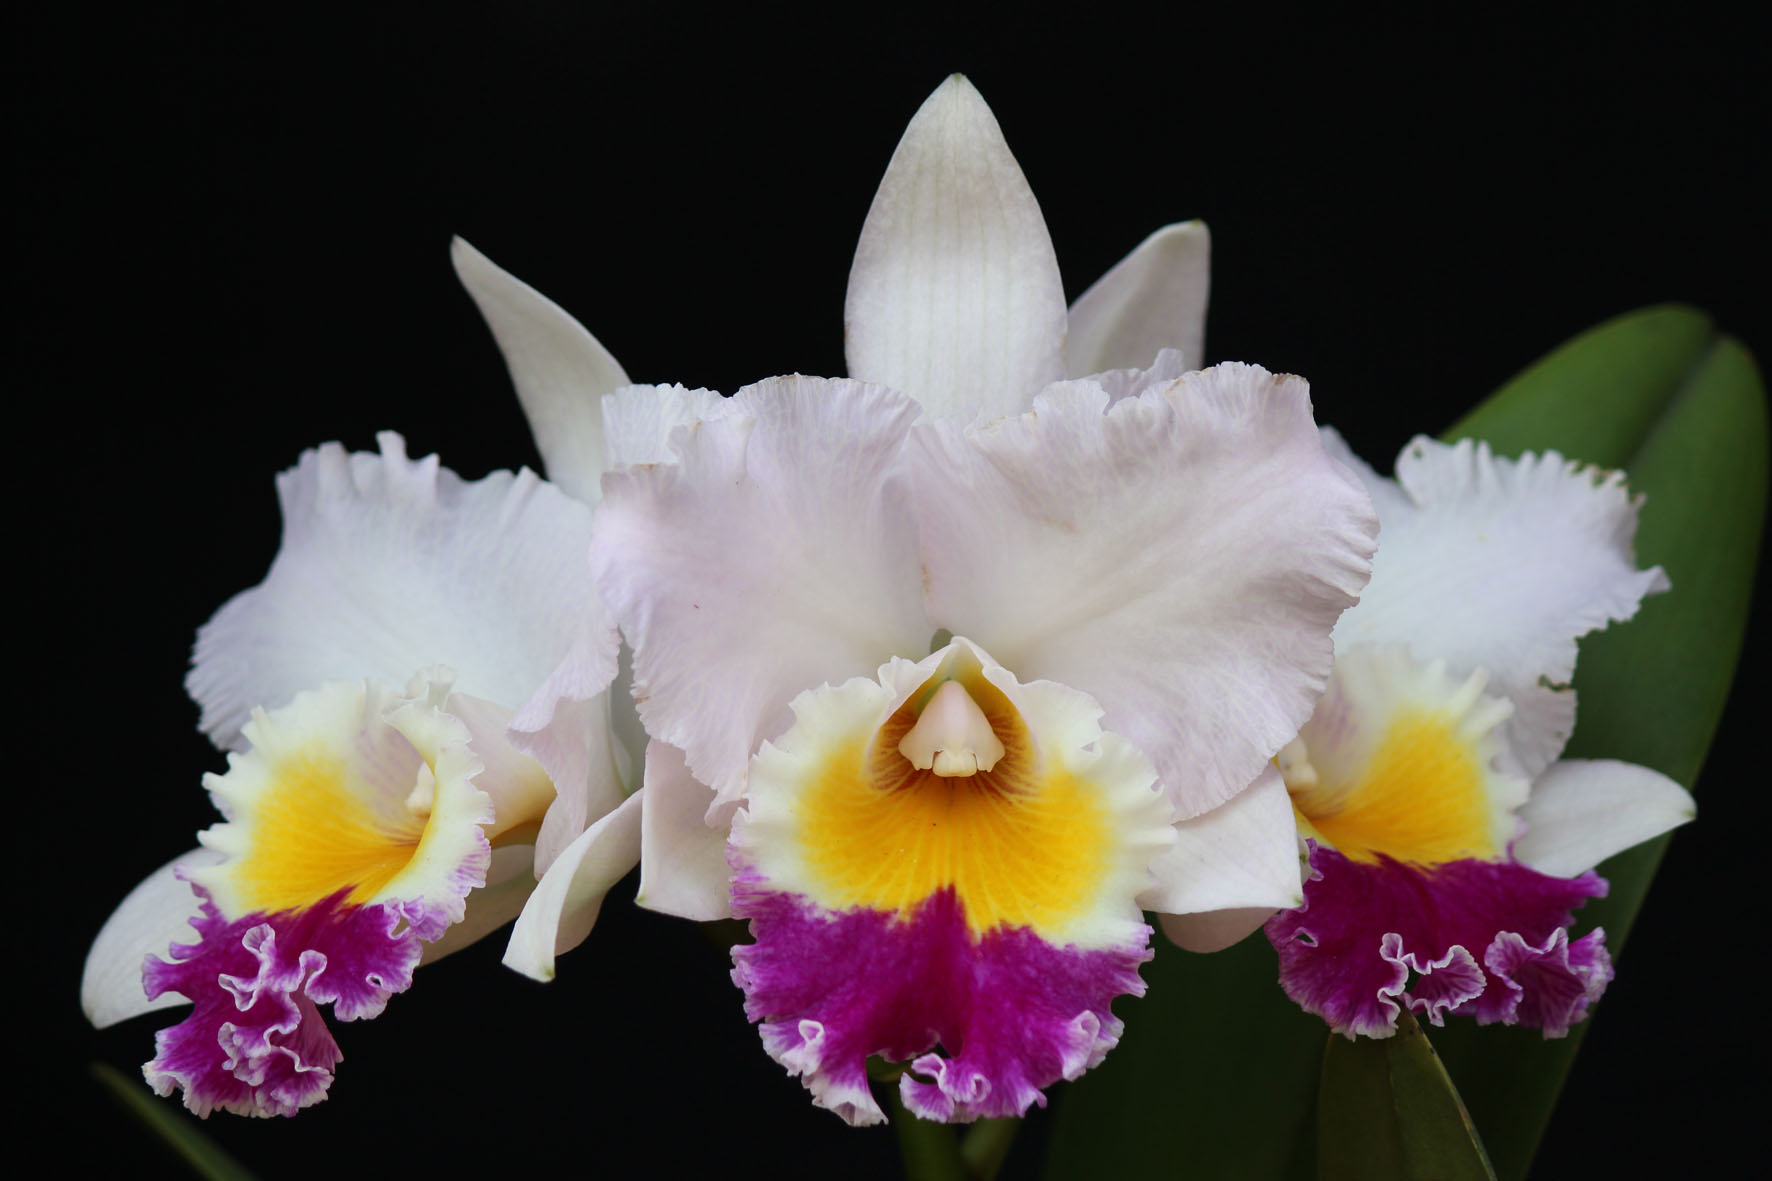 """Lc. Mildred Rives """"Orchidglade"""" FCC/AOS, AM/AOS X C. Nerto x Lc. Barbosa Rodrigues x Blc. Enid Moore """"Belle"""""""